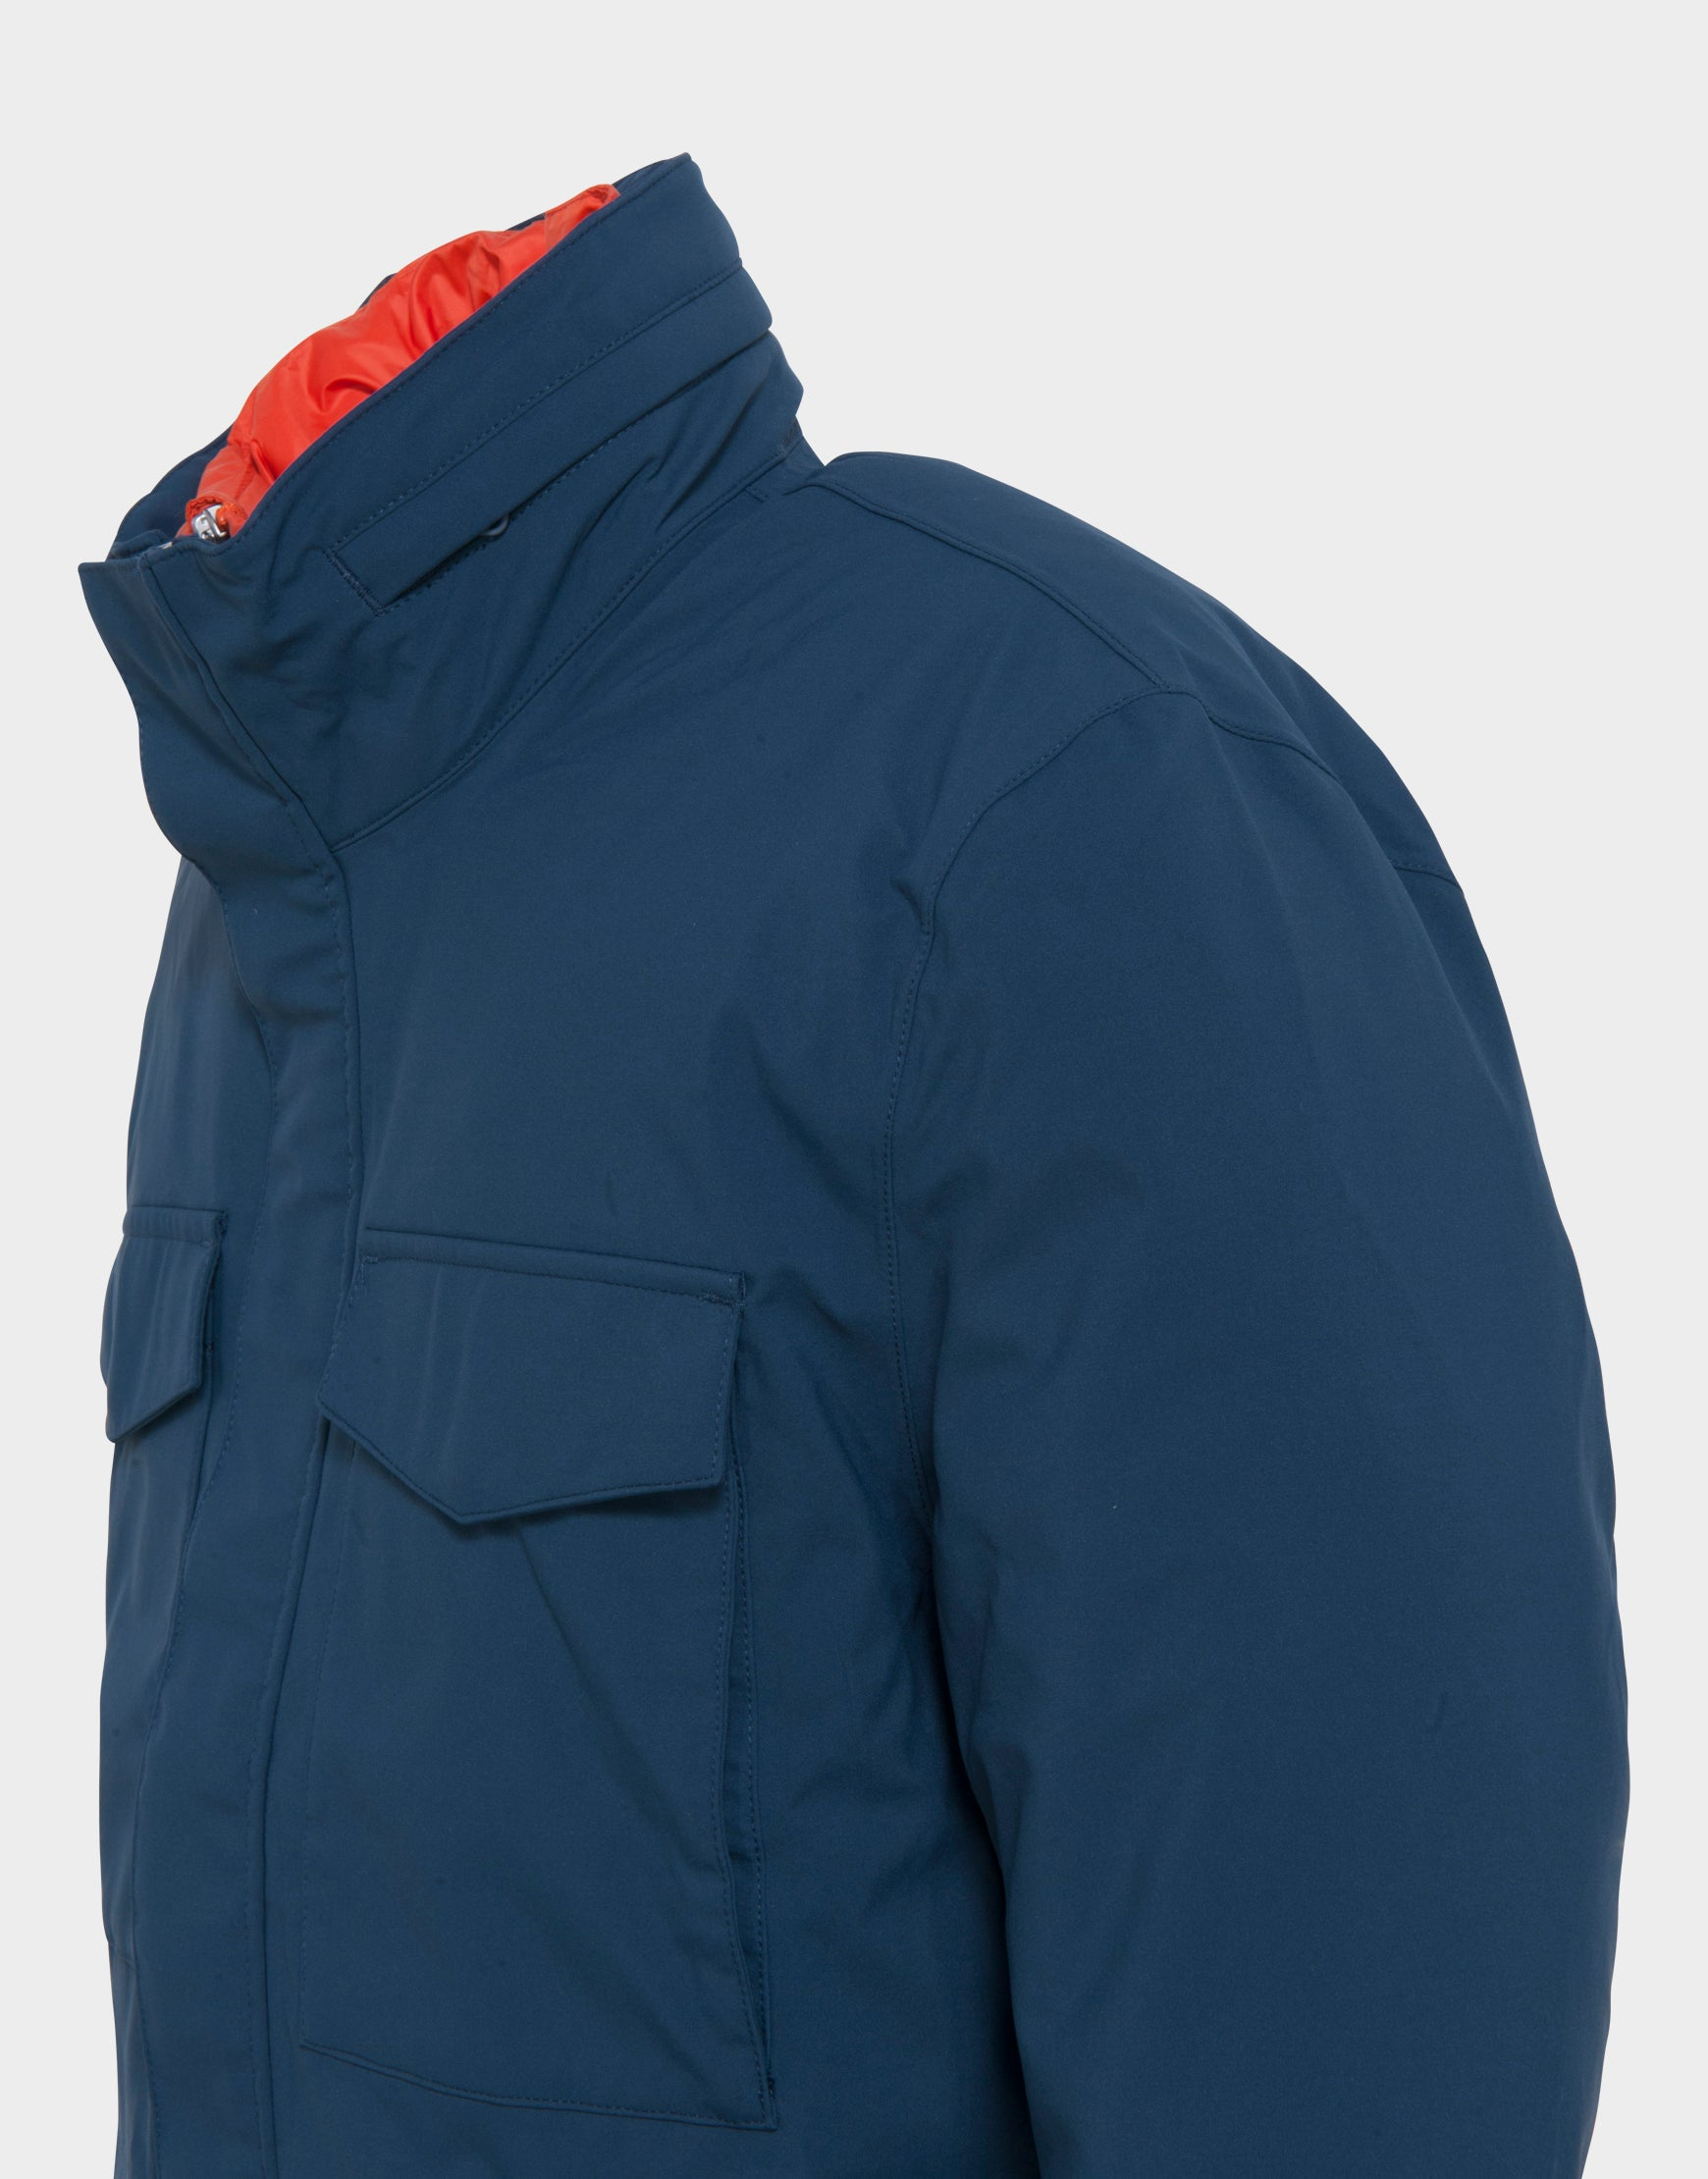 Mens SMEG Winter Jacket in Indigo